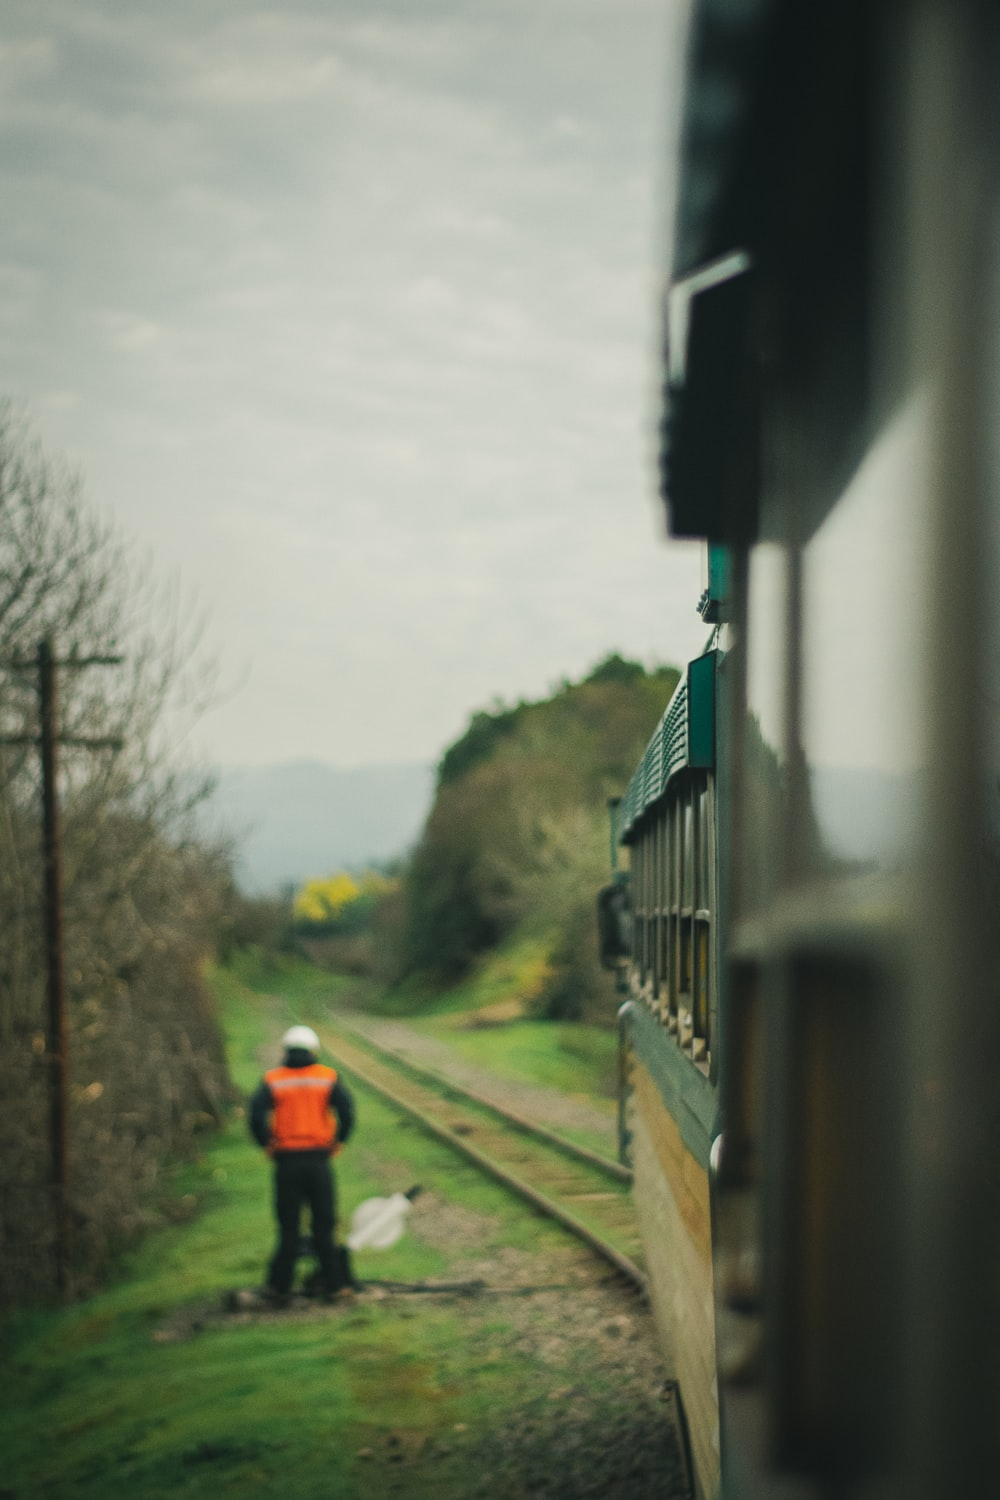 person standing beside train rail near train during daytime